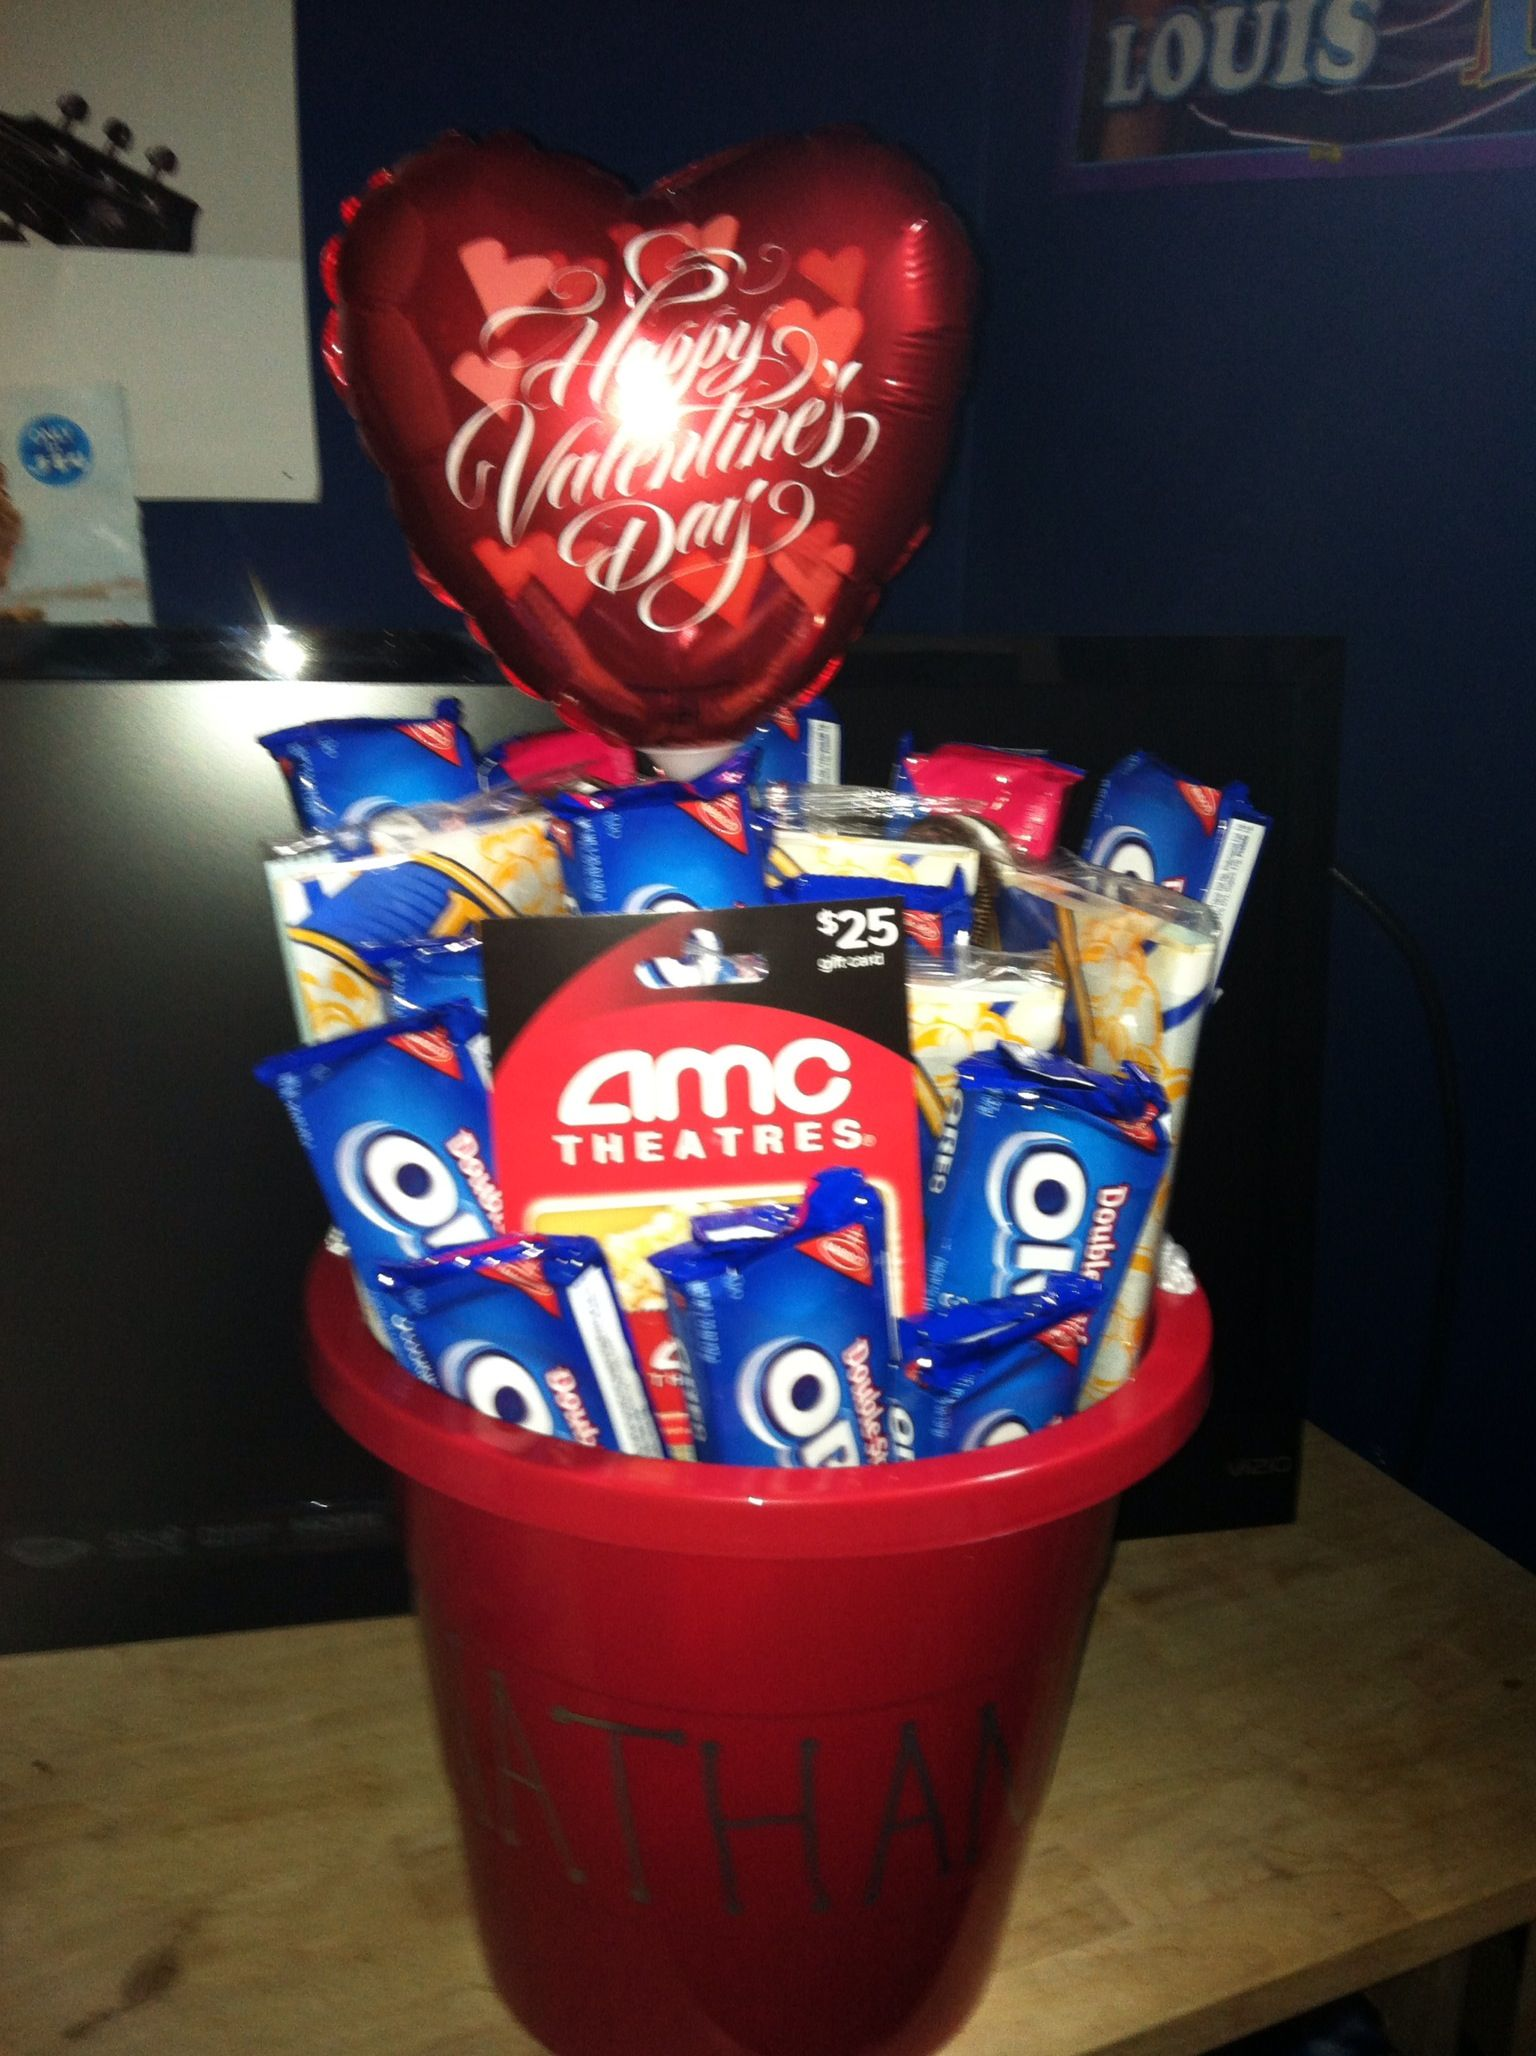 Oreos popcorn and a movies gift card as a Valentines Day gift for